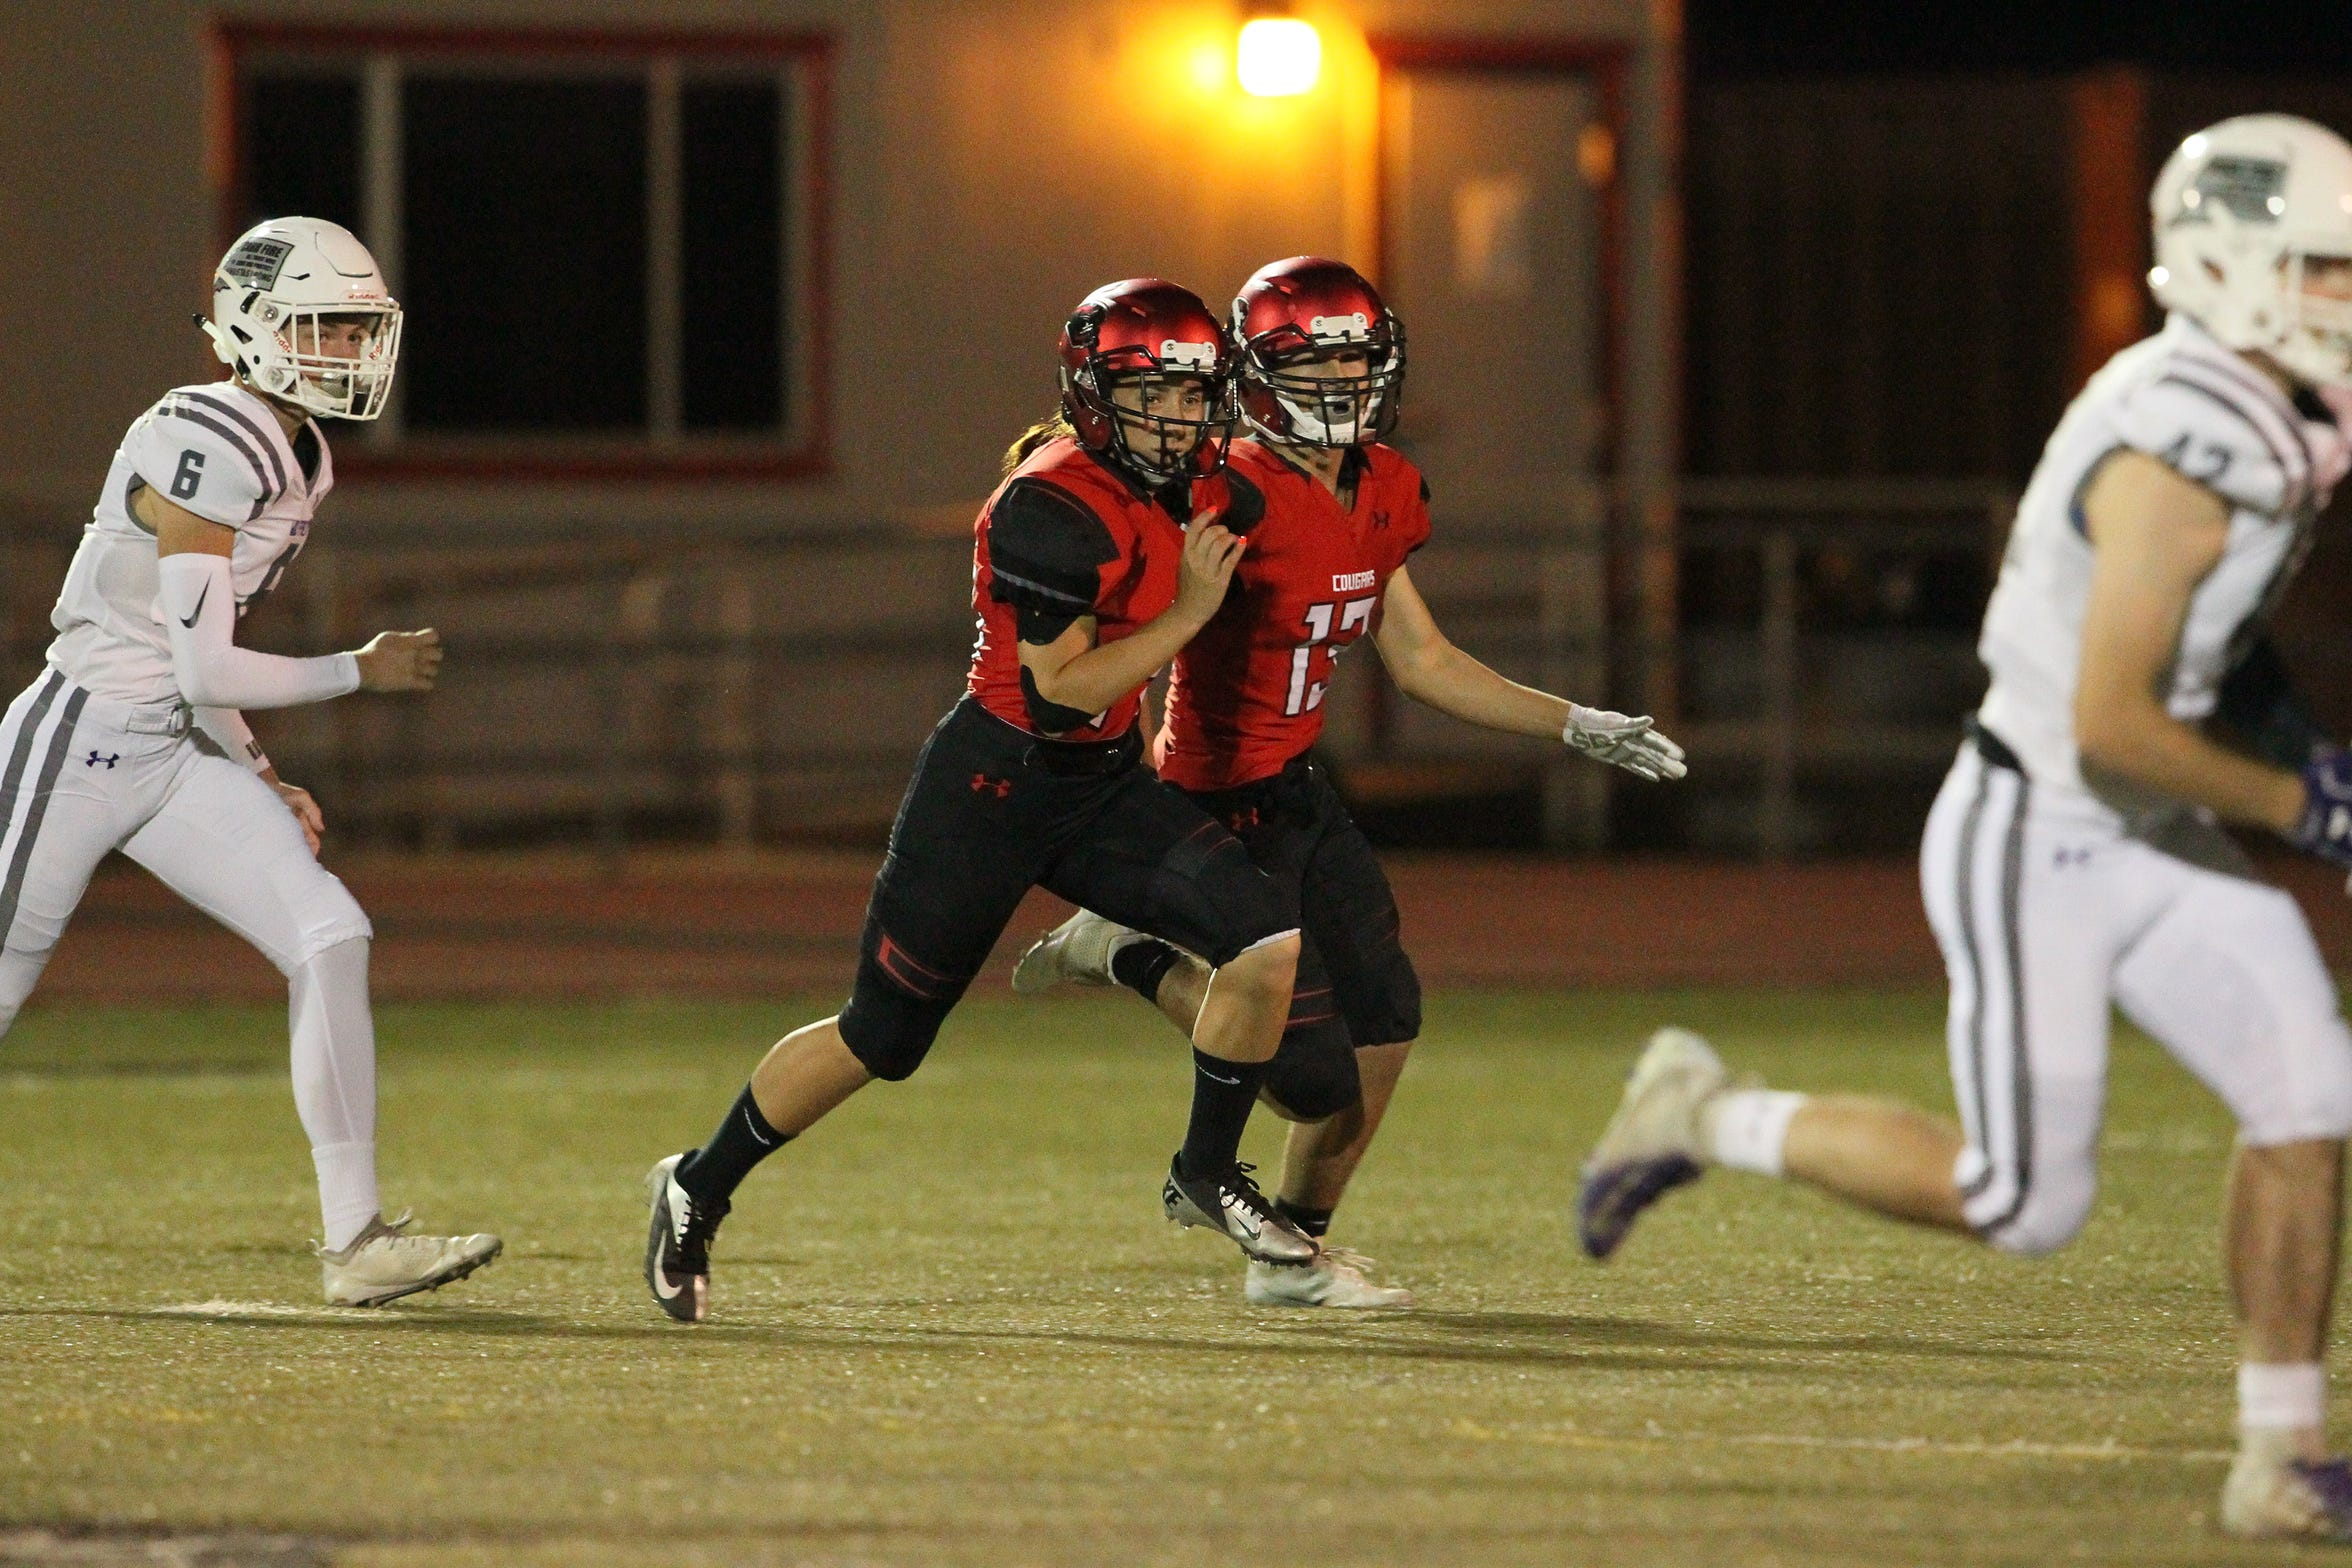 Foothill outside linebacker Lilia Hoheisel (14) and Caleb Wigington (13) move toward the action during their Friday night game against Shasta. Foothill won 49-20.